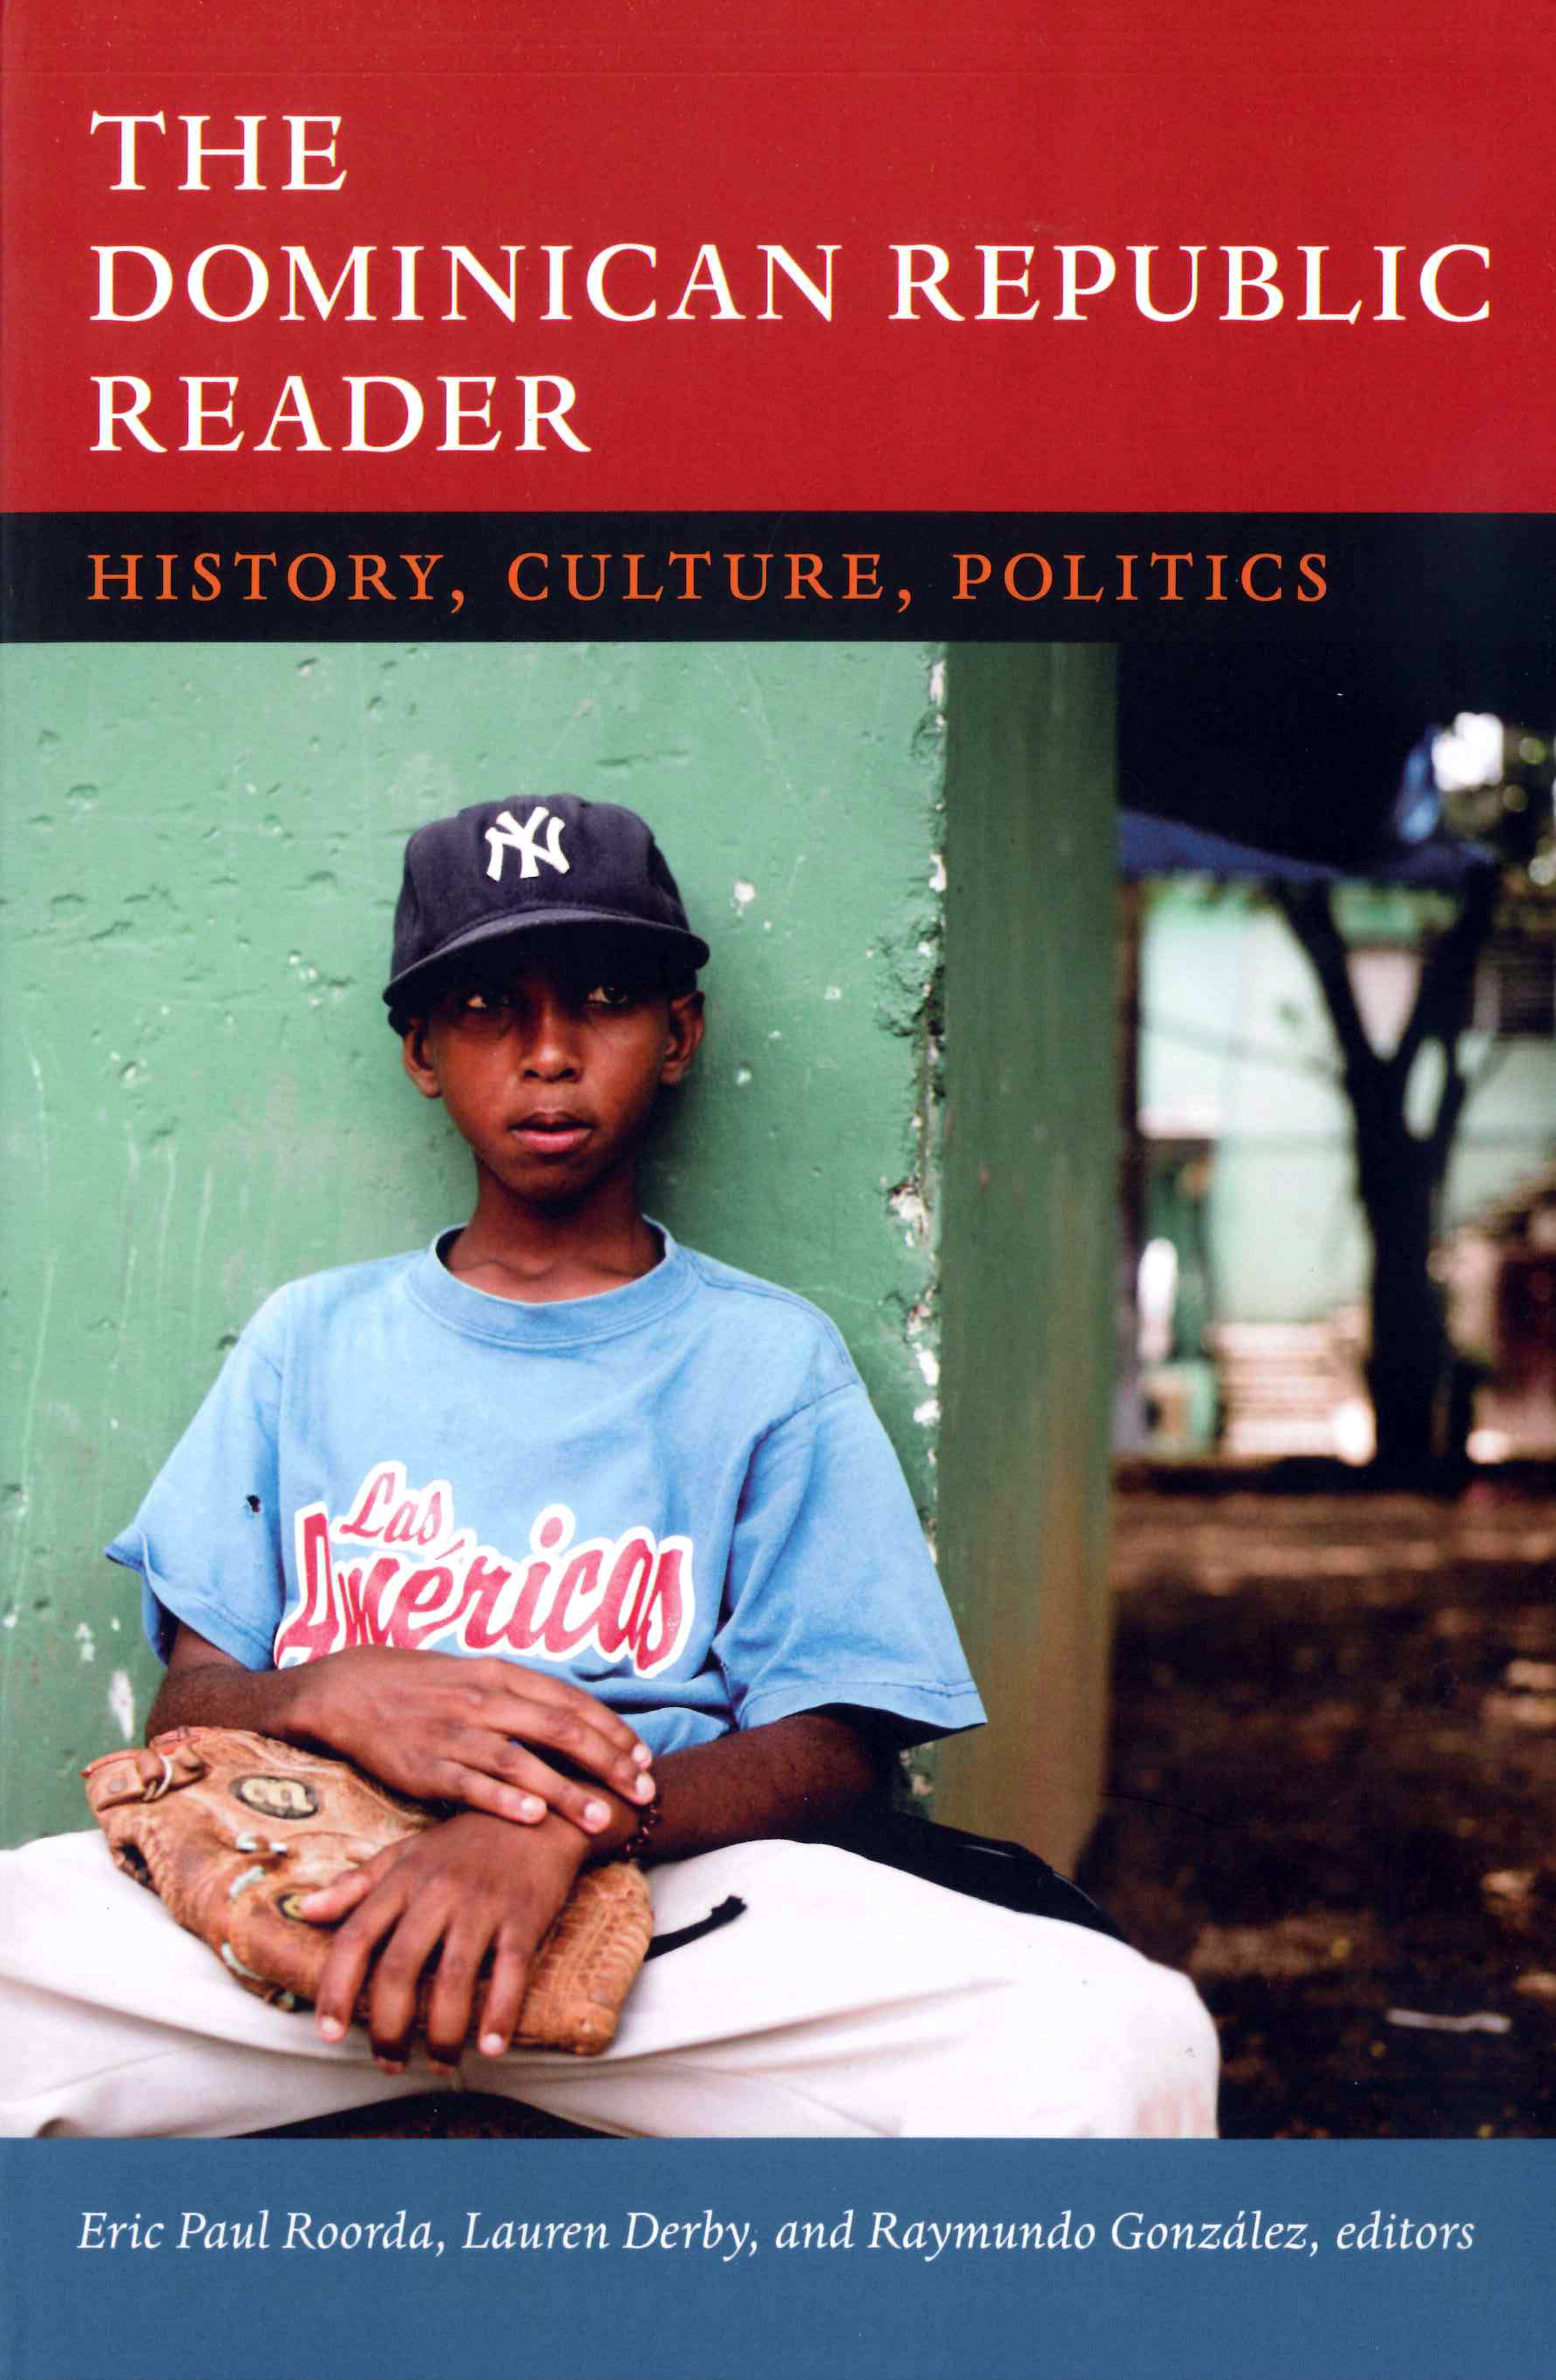 The Dominican Republic Reader: History, Culture, Politics